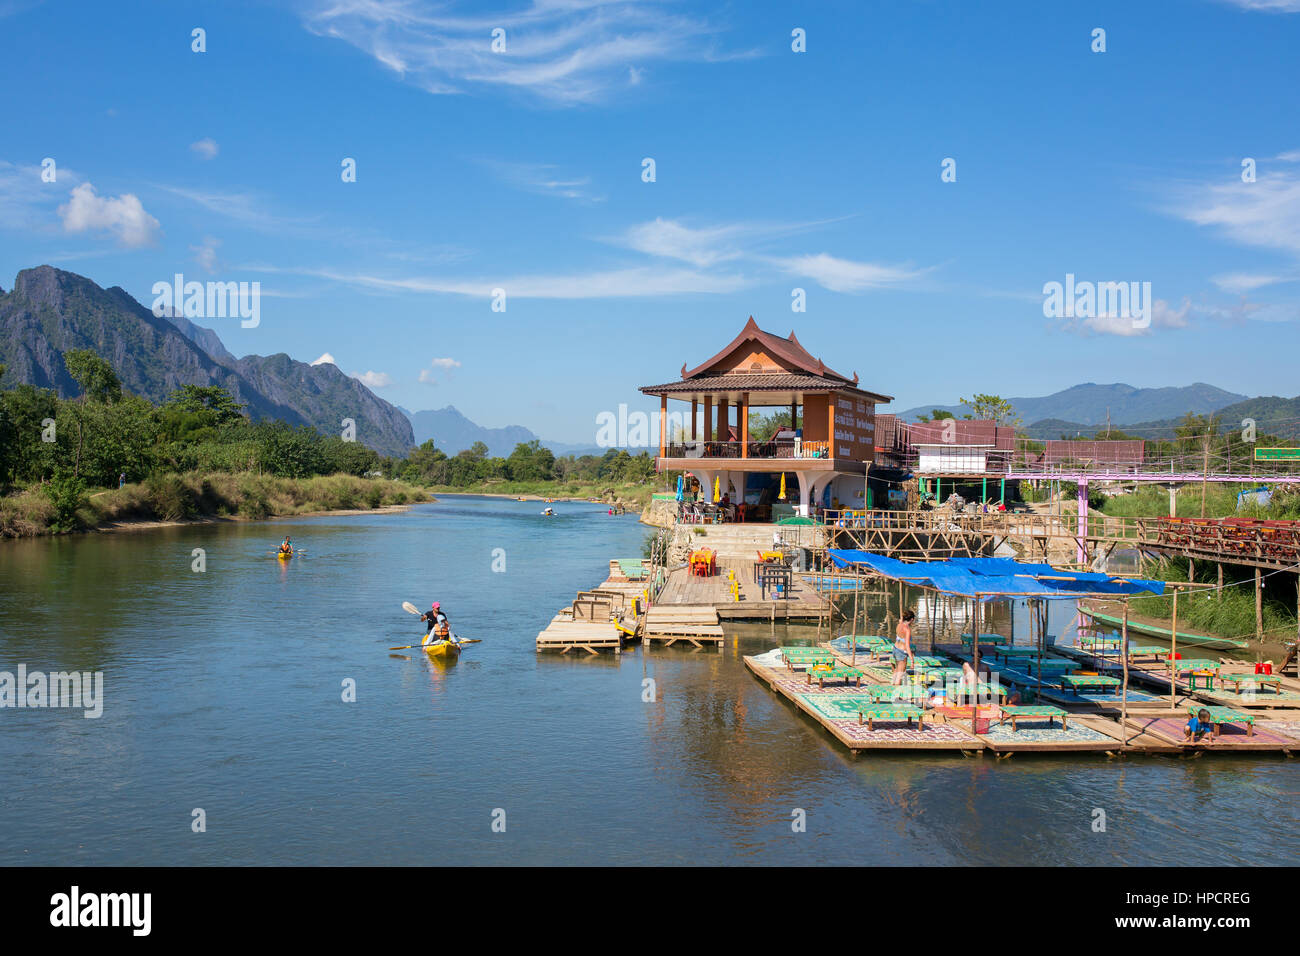 Vang Vieng, Laos - January 19, 2017: Unidentified tourists are rowing kayak boats in Nam Song River in Vang Vieng, - Stock Image